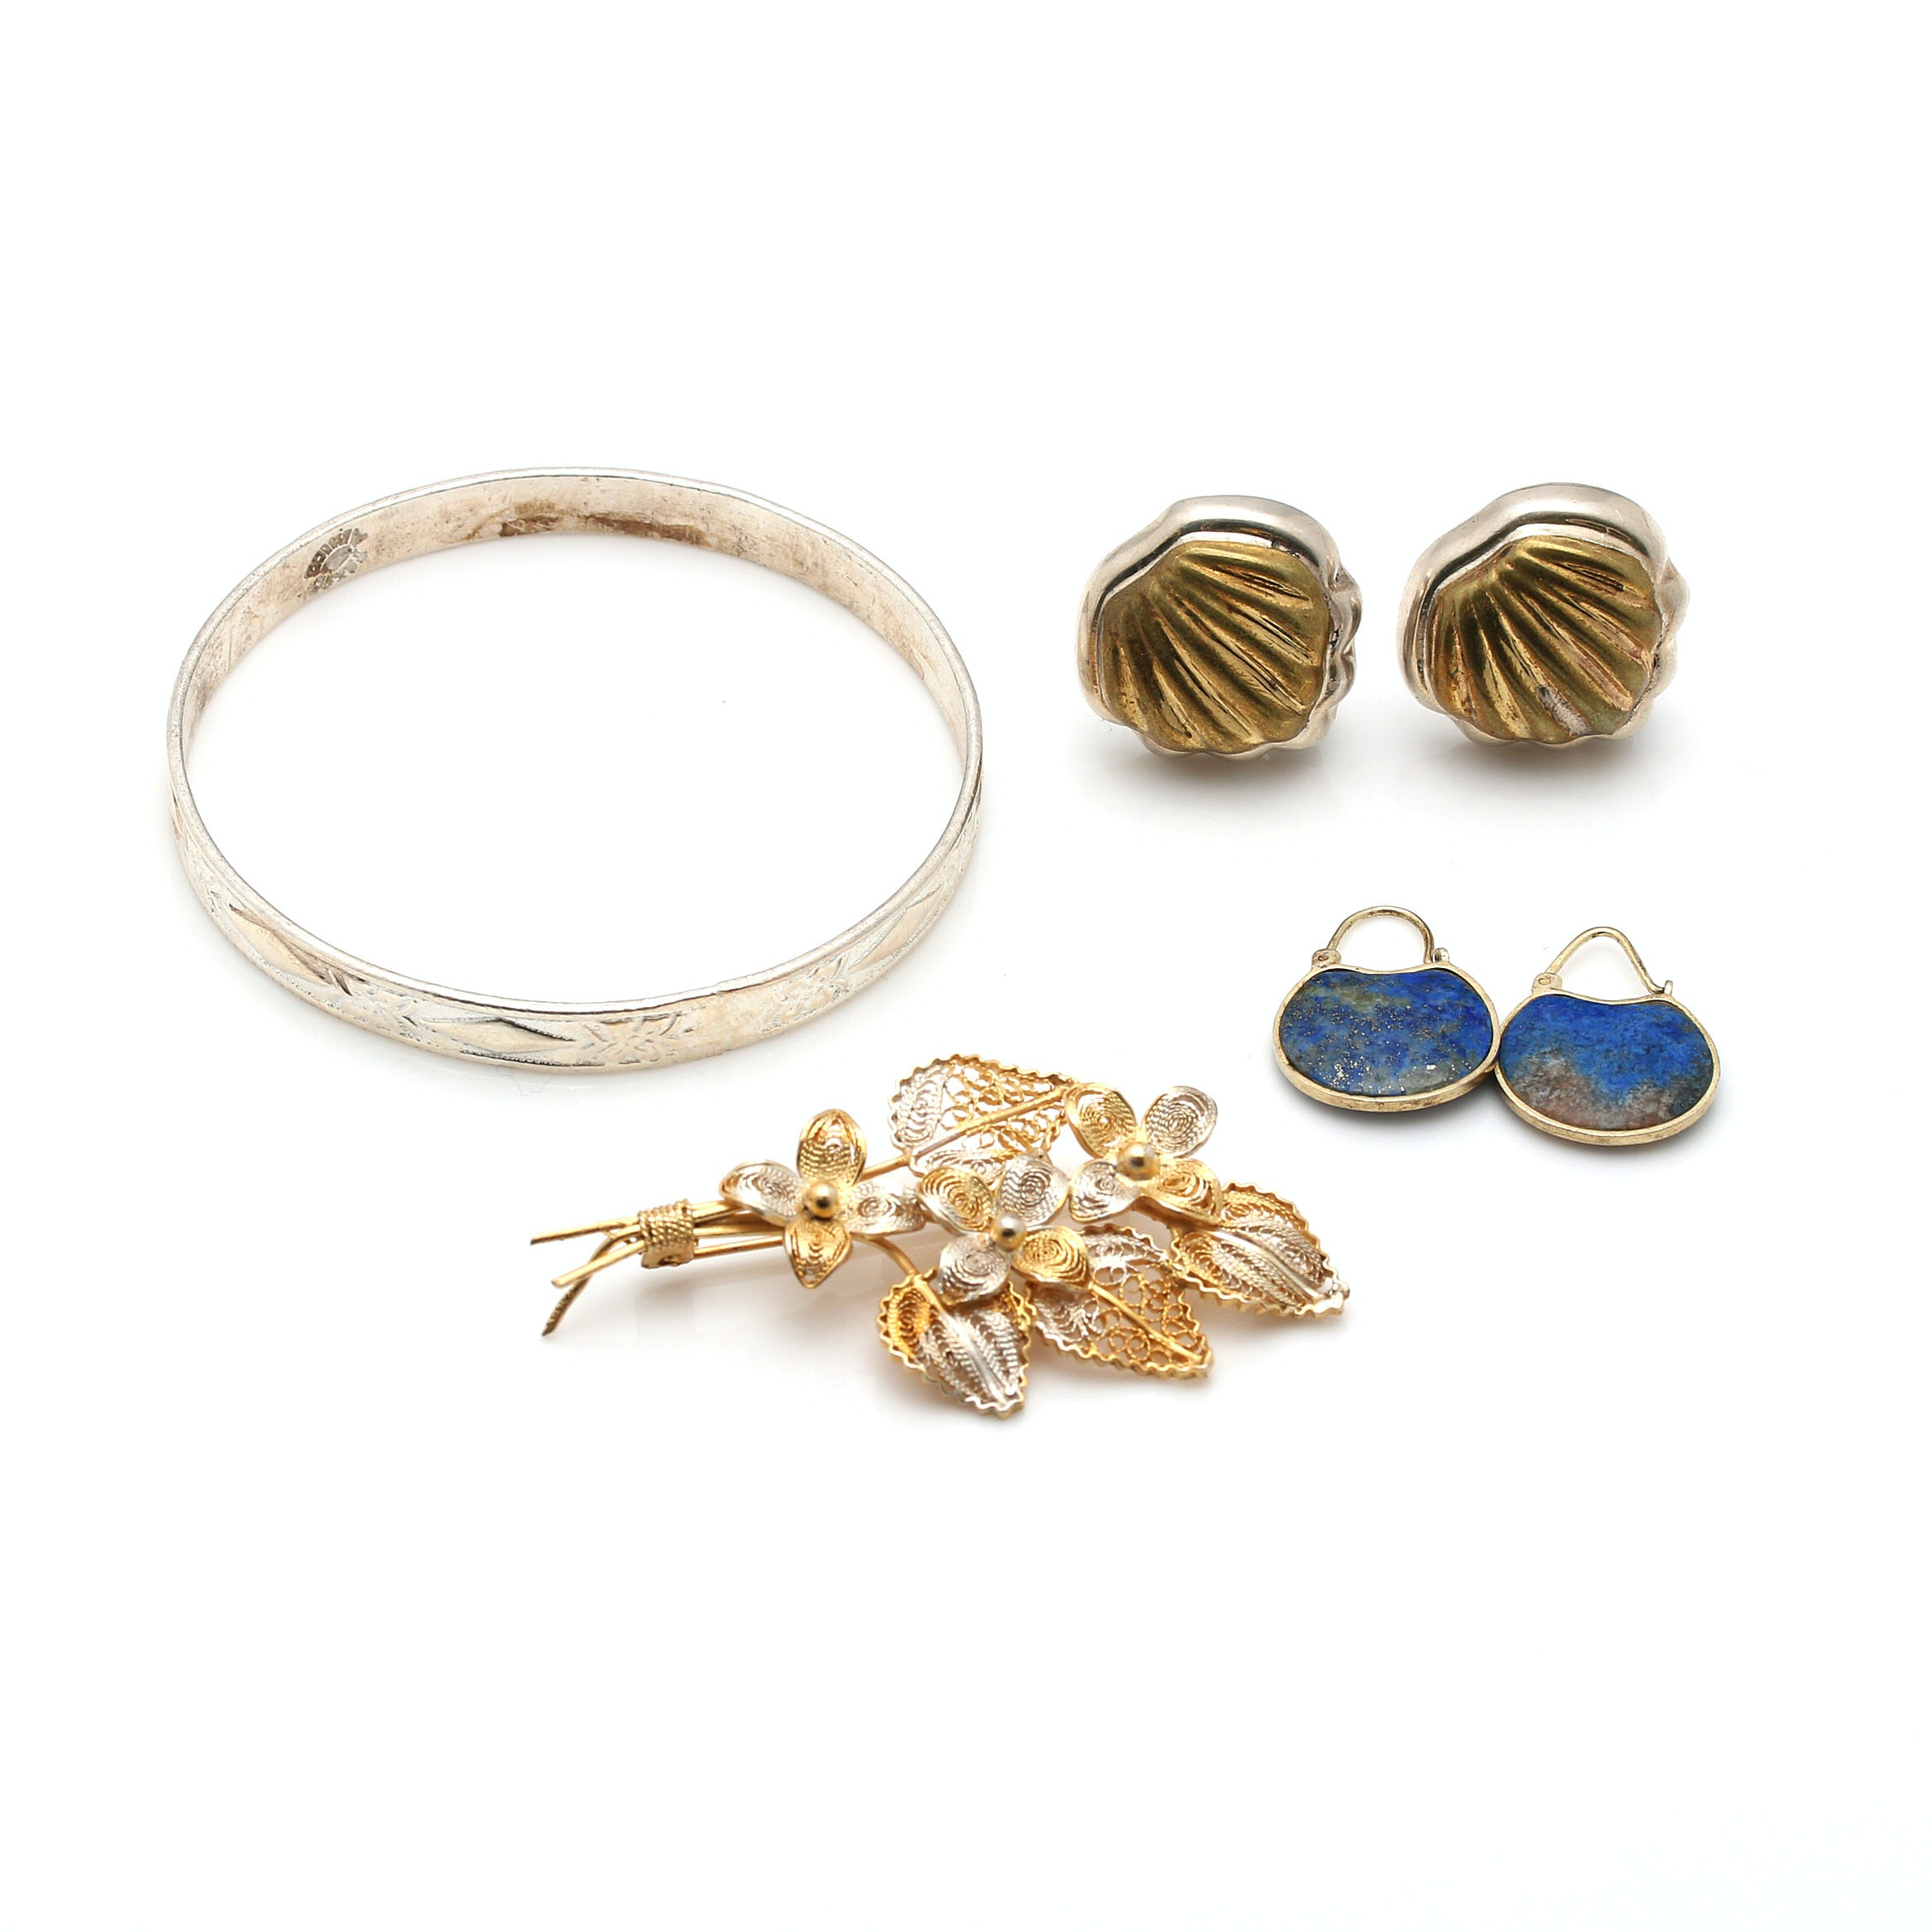 Grouping of Sterling Silver Jewelry Including Gold Wash and Stone